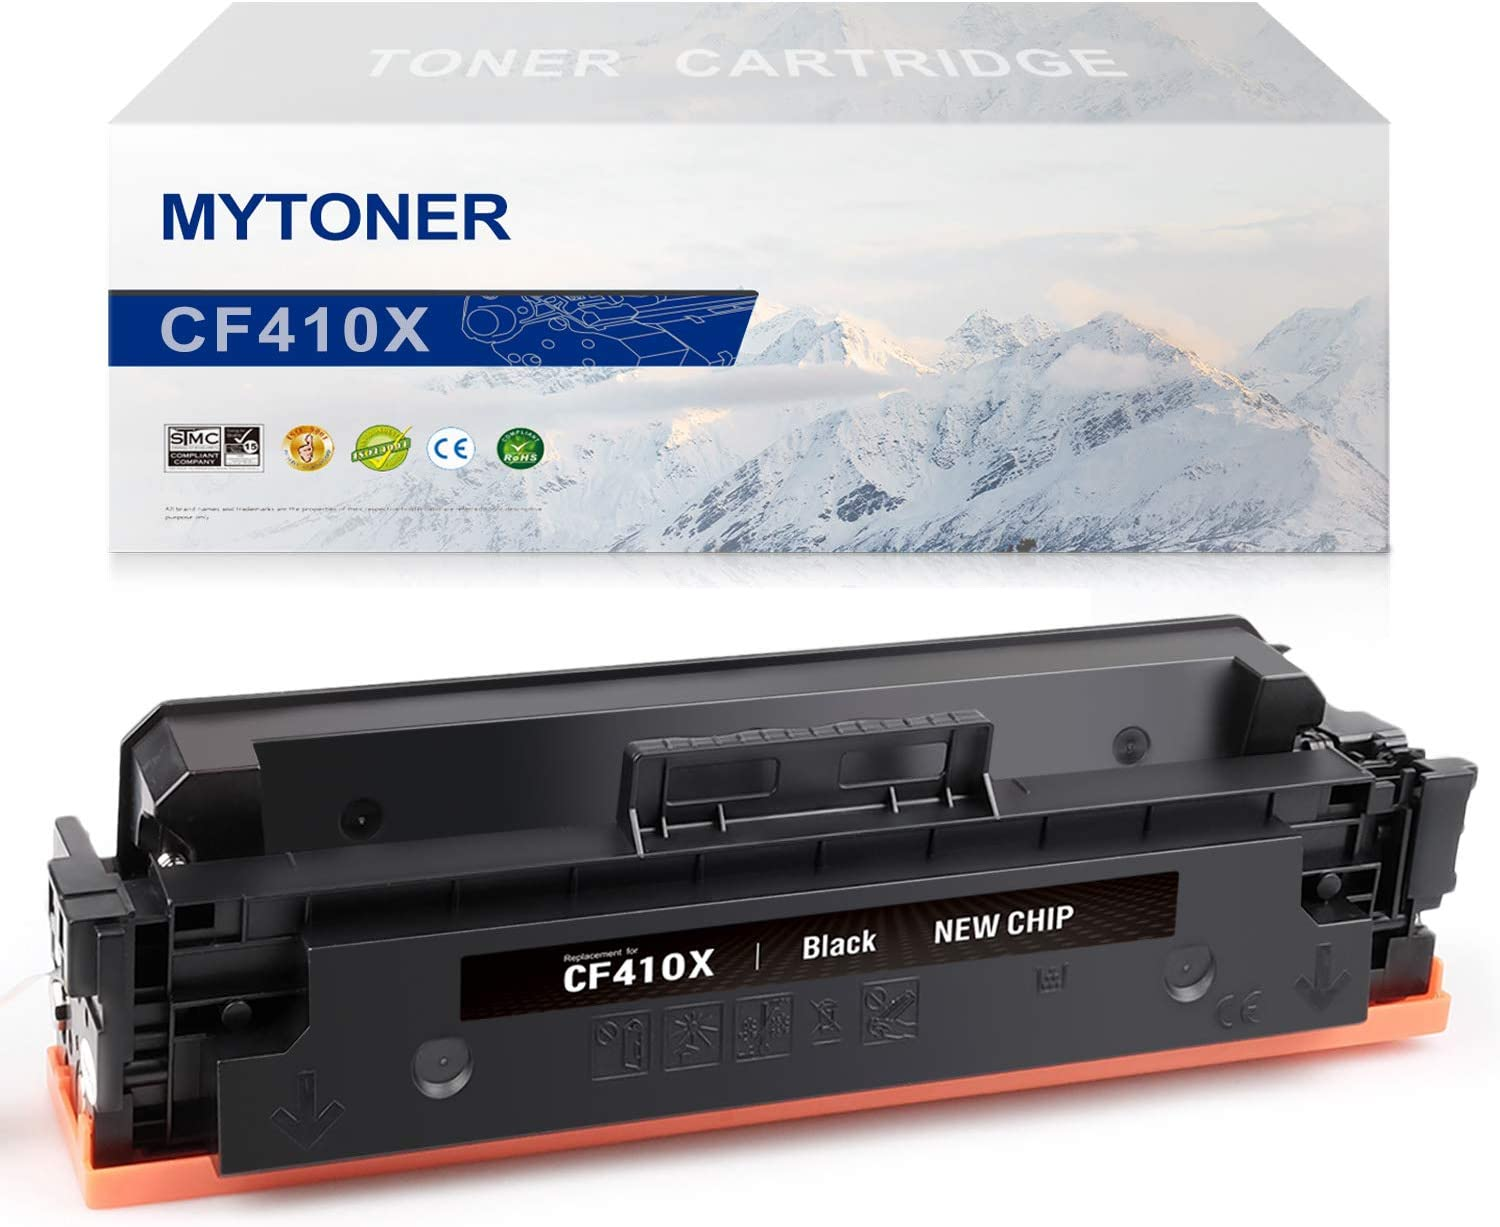 MYTONER Compatible Toner Cartridge Replacement for HP 410X CF410X CF410A 410A Toner for Color Laserjet Pro MFP M477fnw M477fdw M477fdn M477 M452dn M452nw M452dw M452 M377DW Printer Ink(Black,1-Pack)